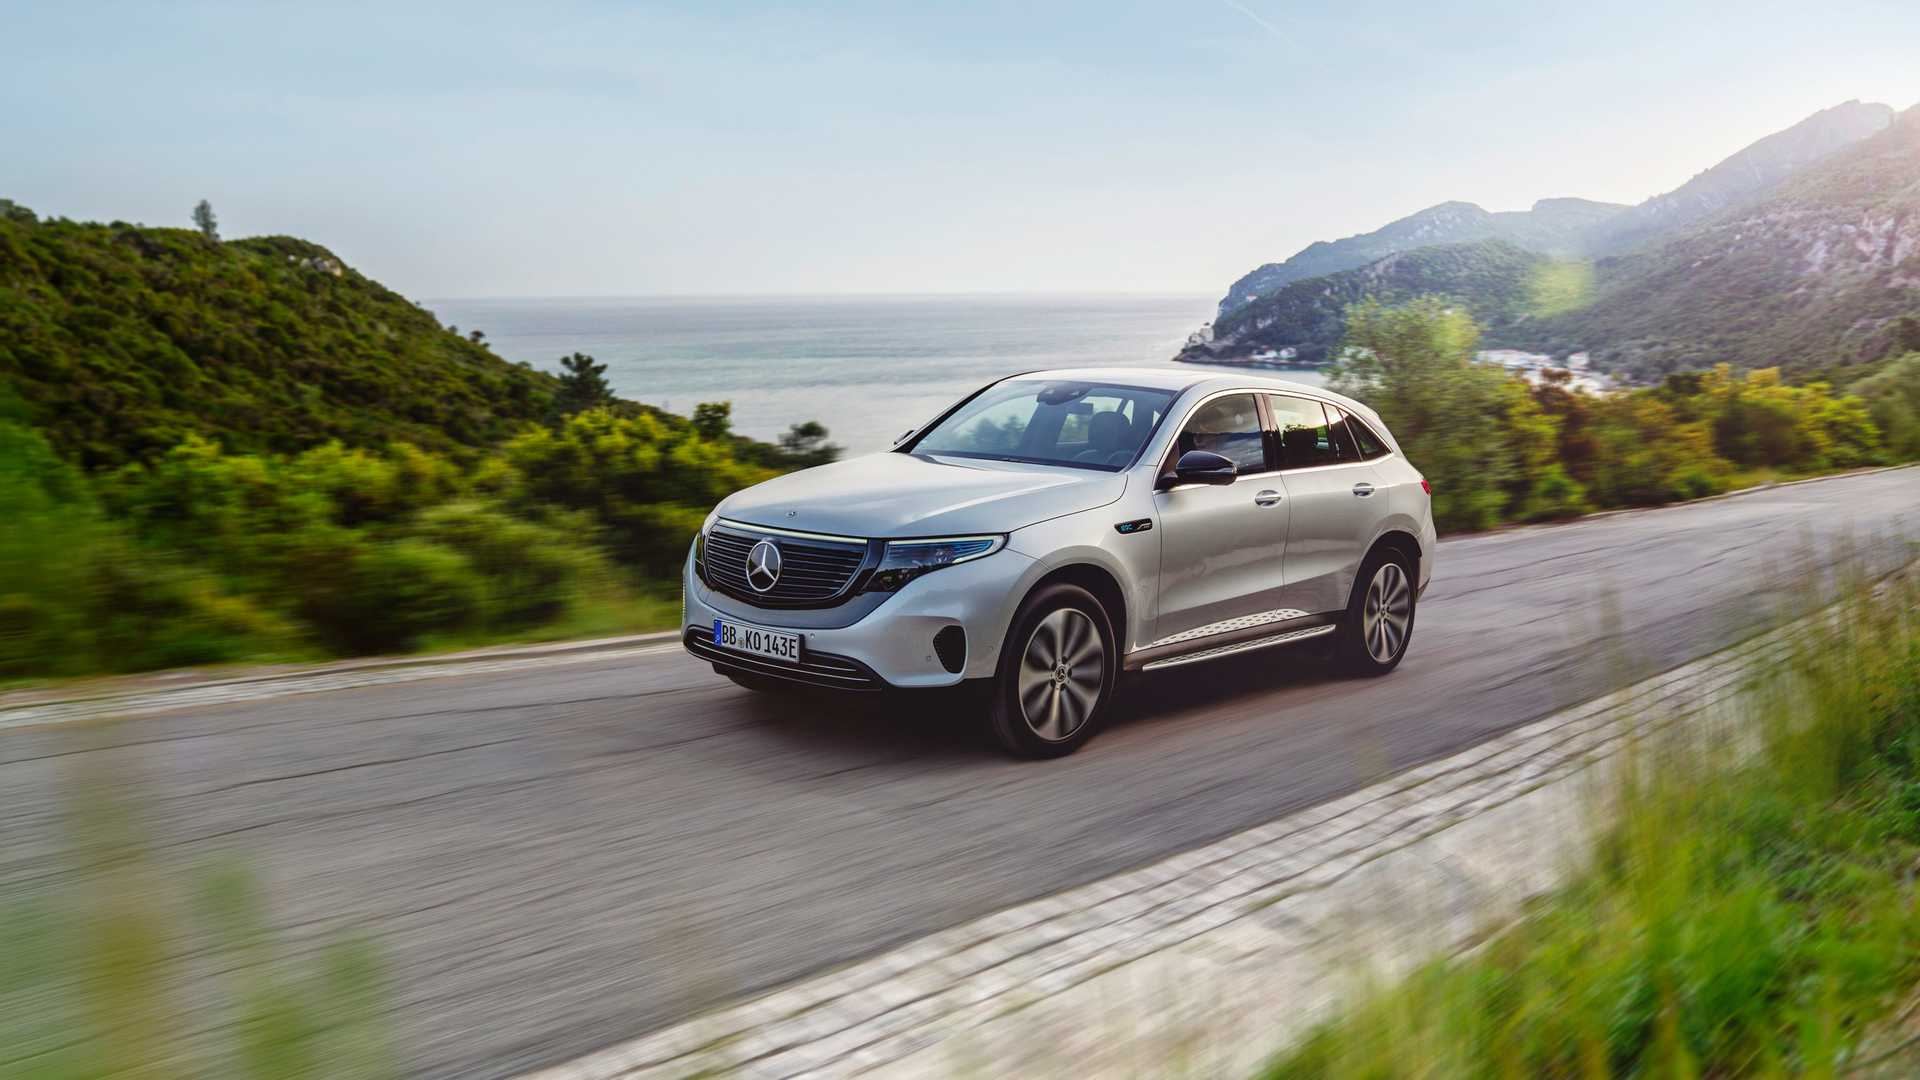 Mercedes Benz Eqc Edition 1886 Arriving In North America In 2020 Autoevolution